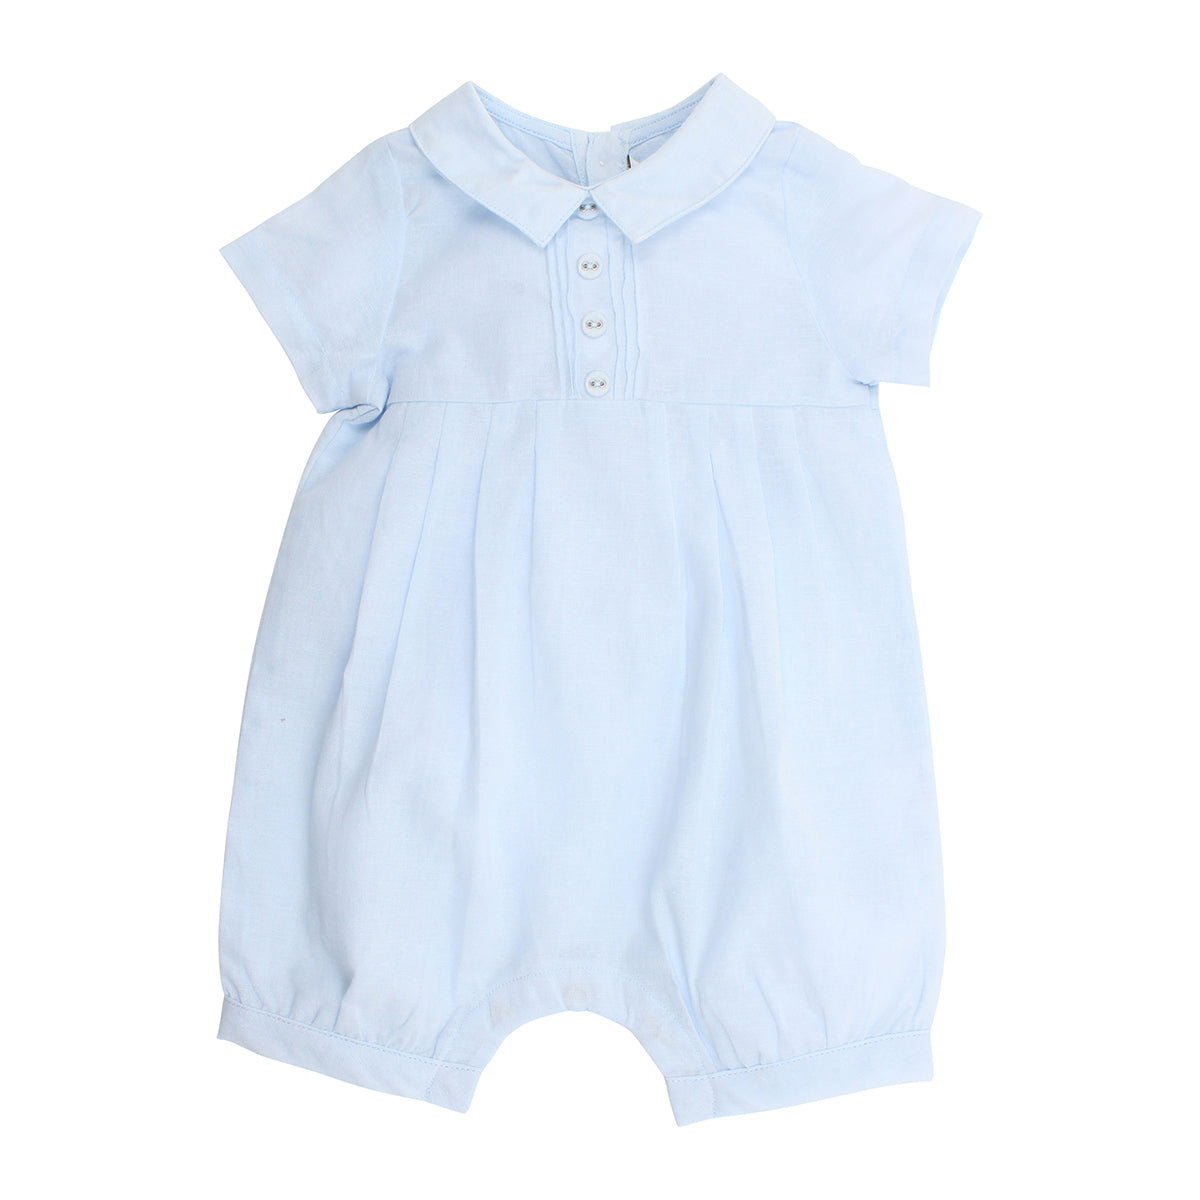 BEBE BOYS PLEAT ROMPER - PALE BLUE